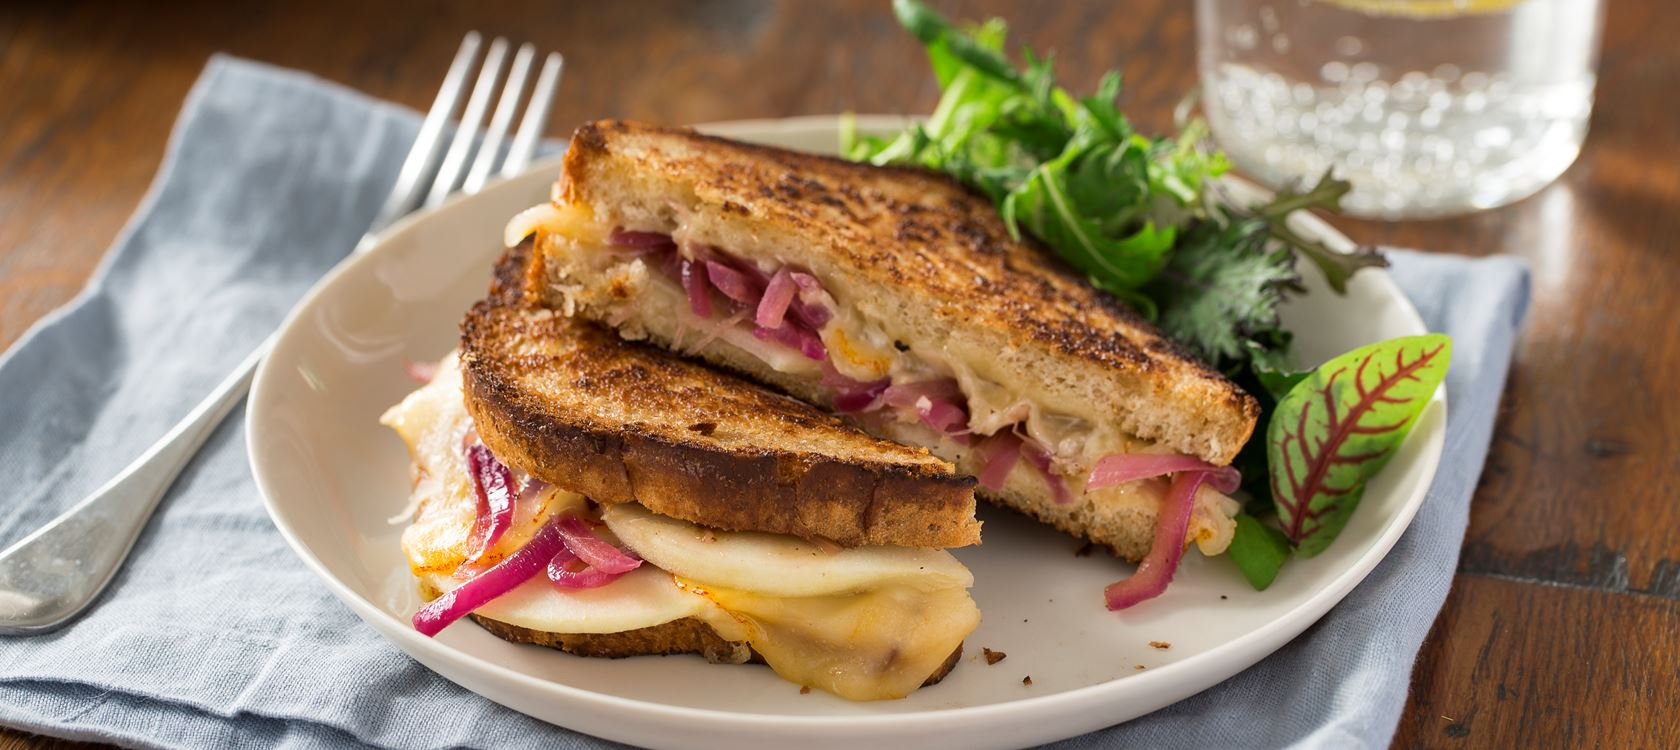 Balsamic Onion and Pear Grilled Cheese